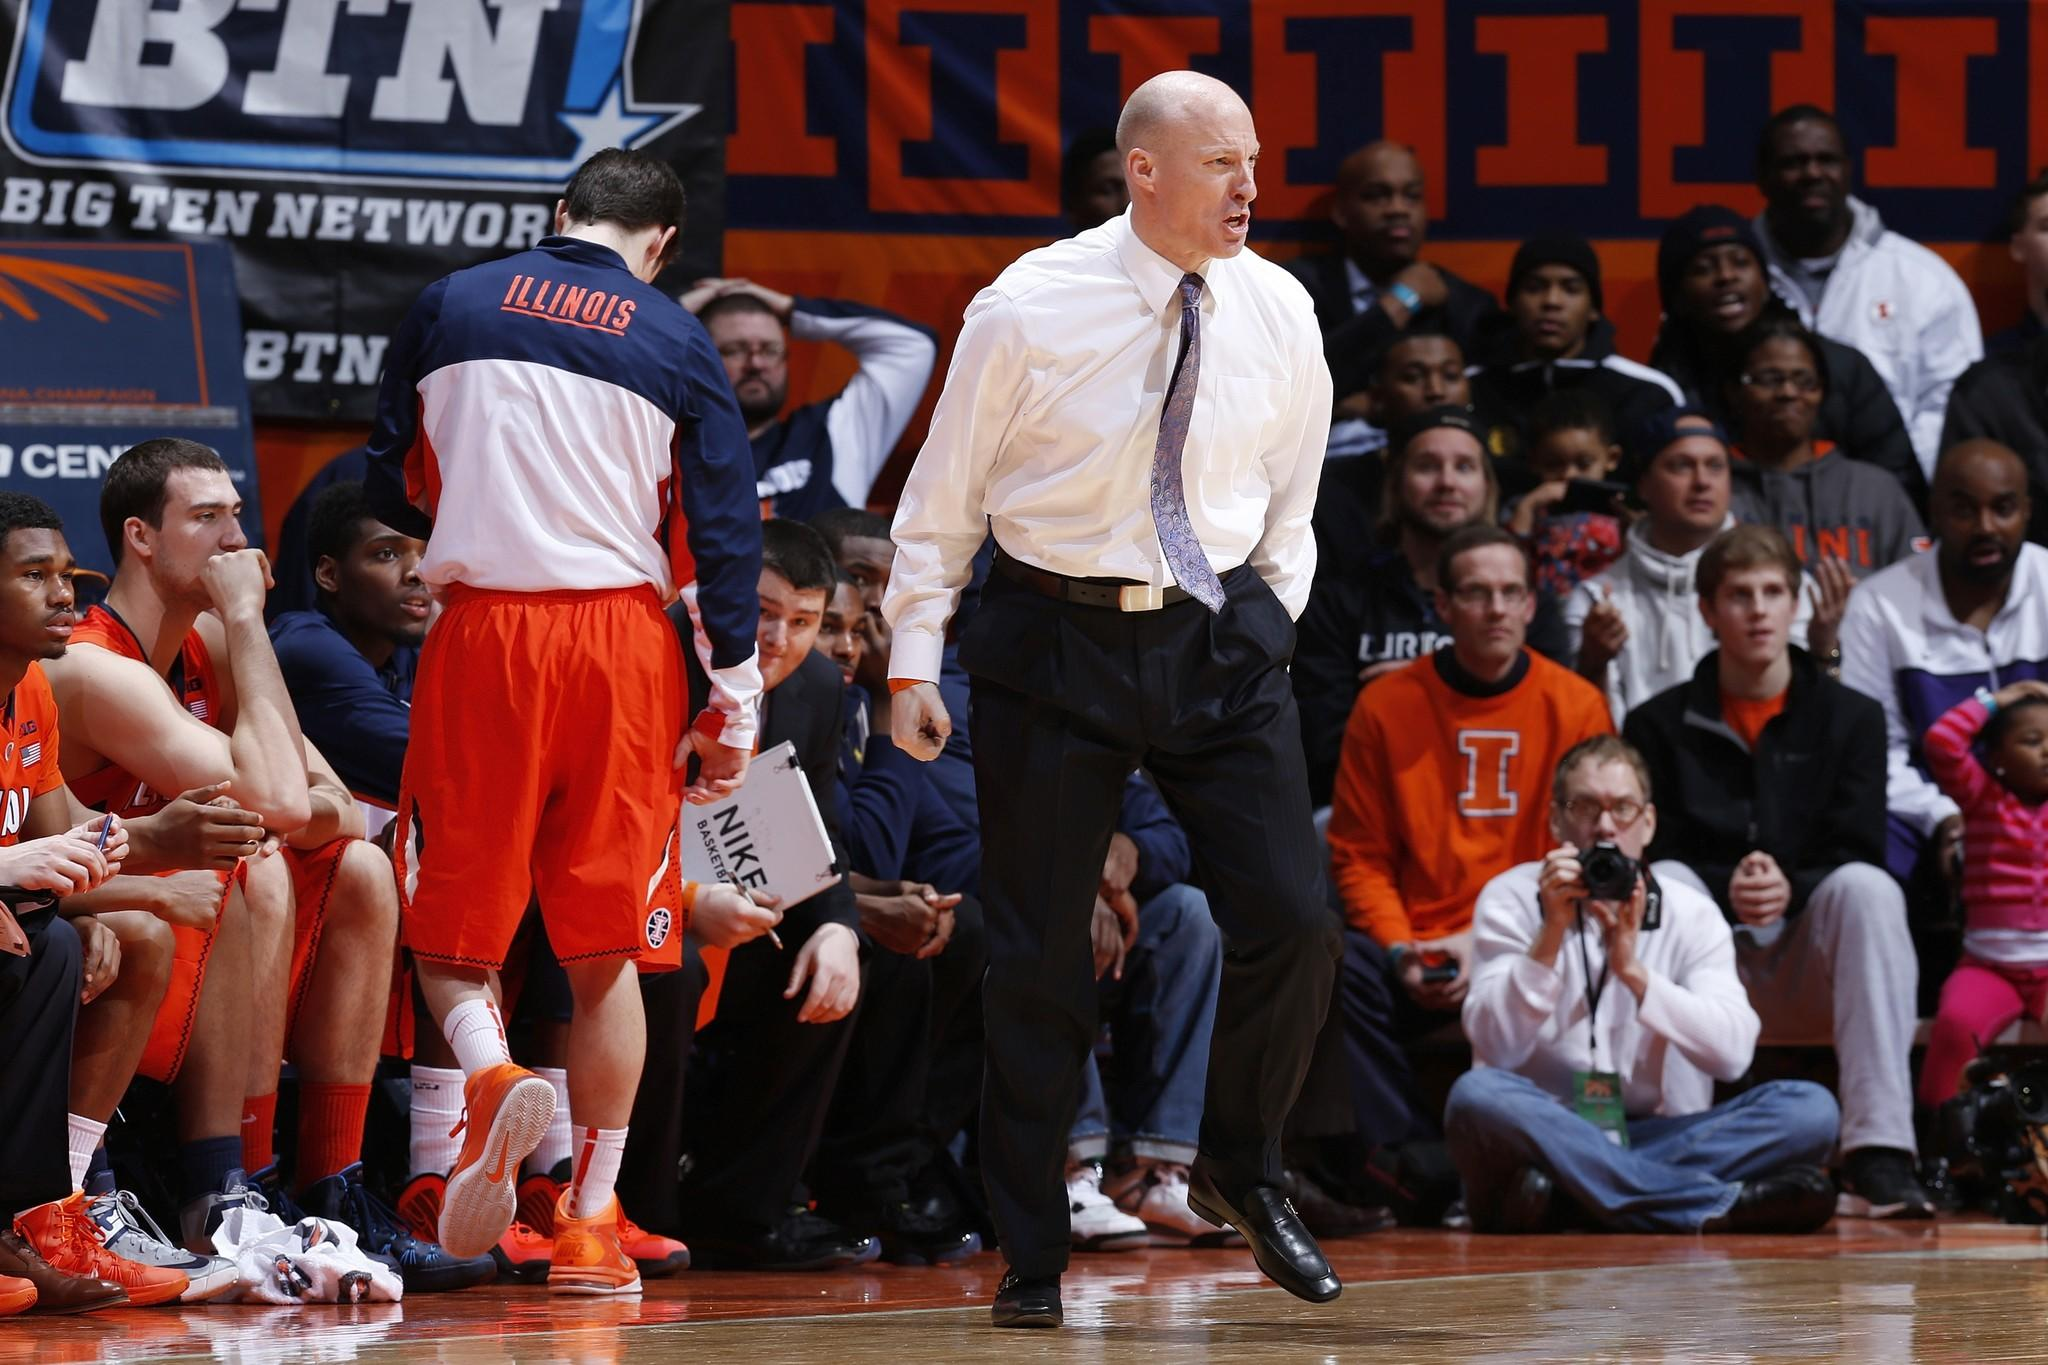 Head coach John Groce of Illinois reacts during a game against Michigan State.